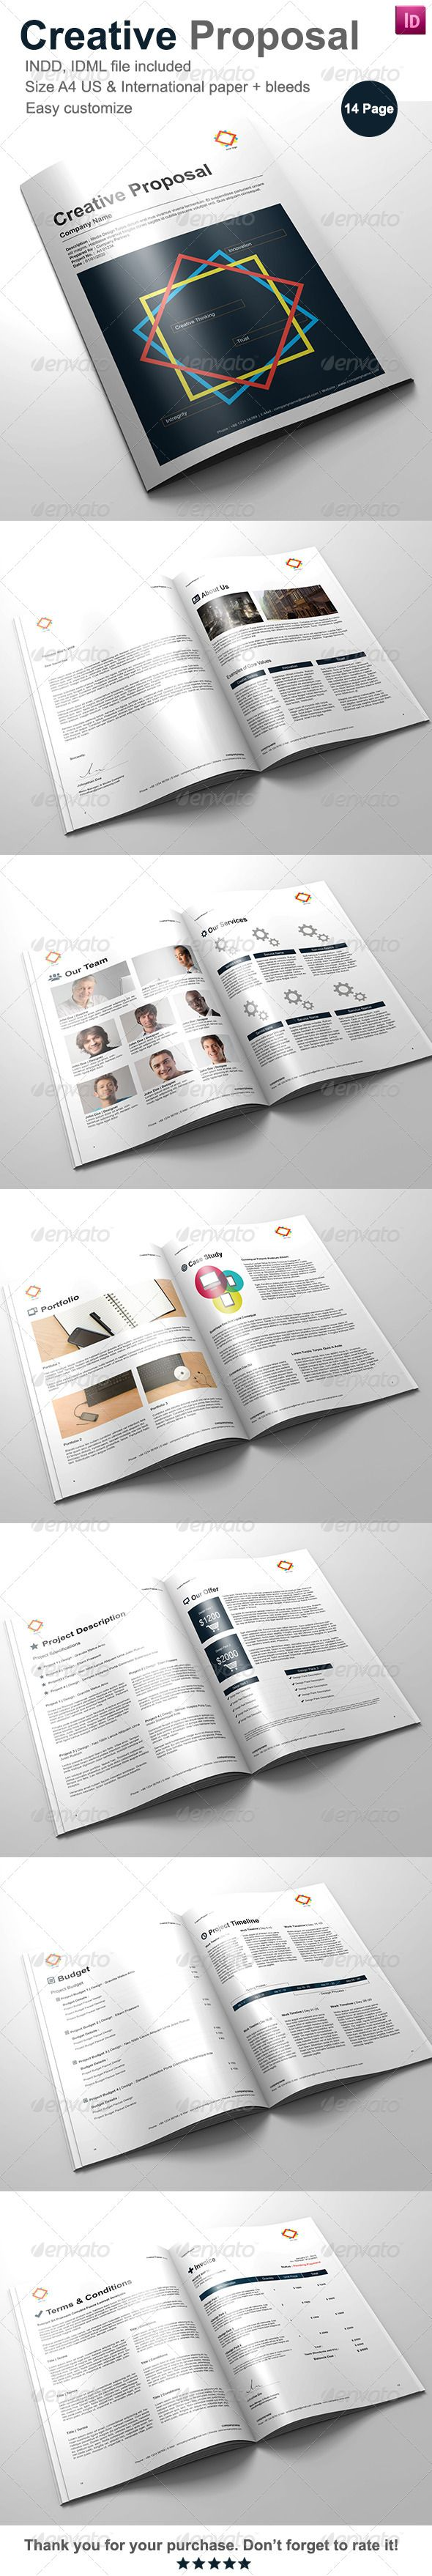 Commercial Proposal Format Gorgeous 504 Best Business Proposal Images On Pinterest  Proposal Templates .